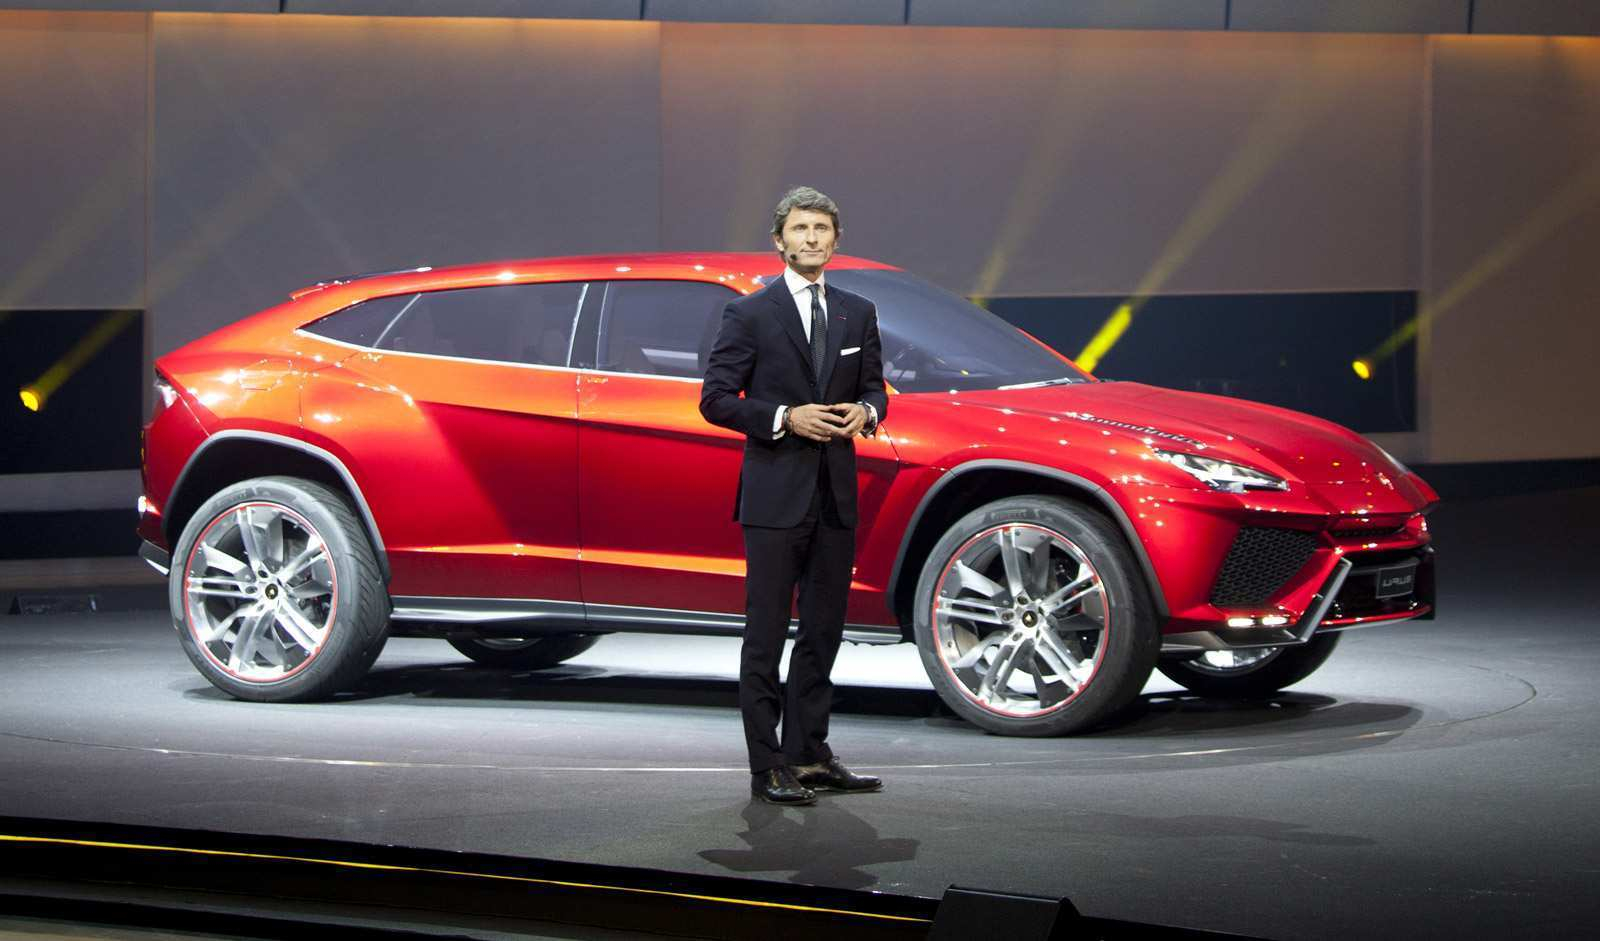 93 Best Review 2020 Lamborghini Suv Speed Test with 2020 Lamborghini Suv